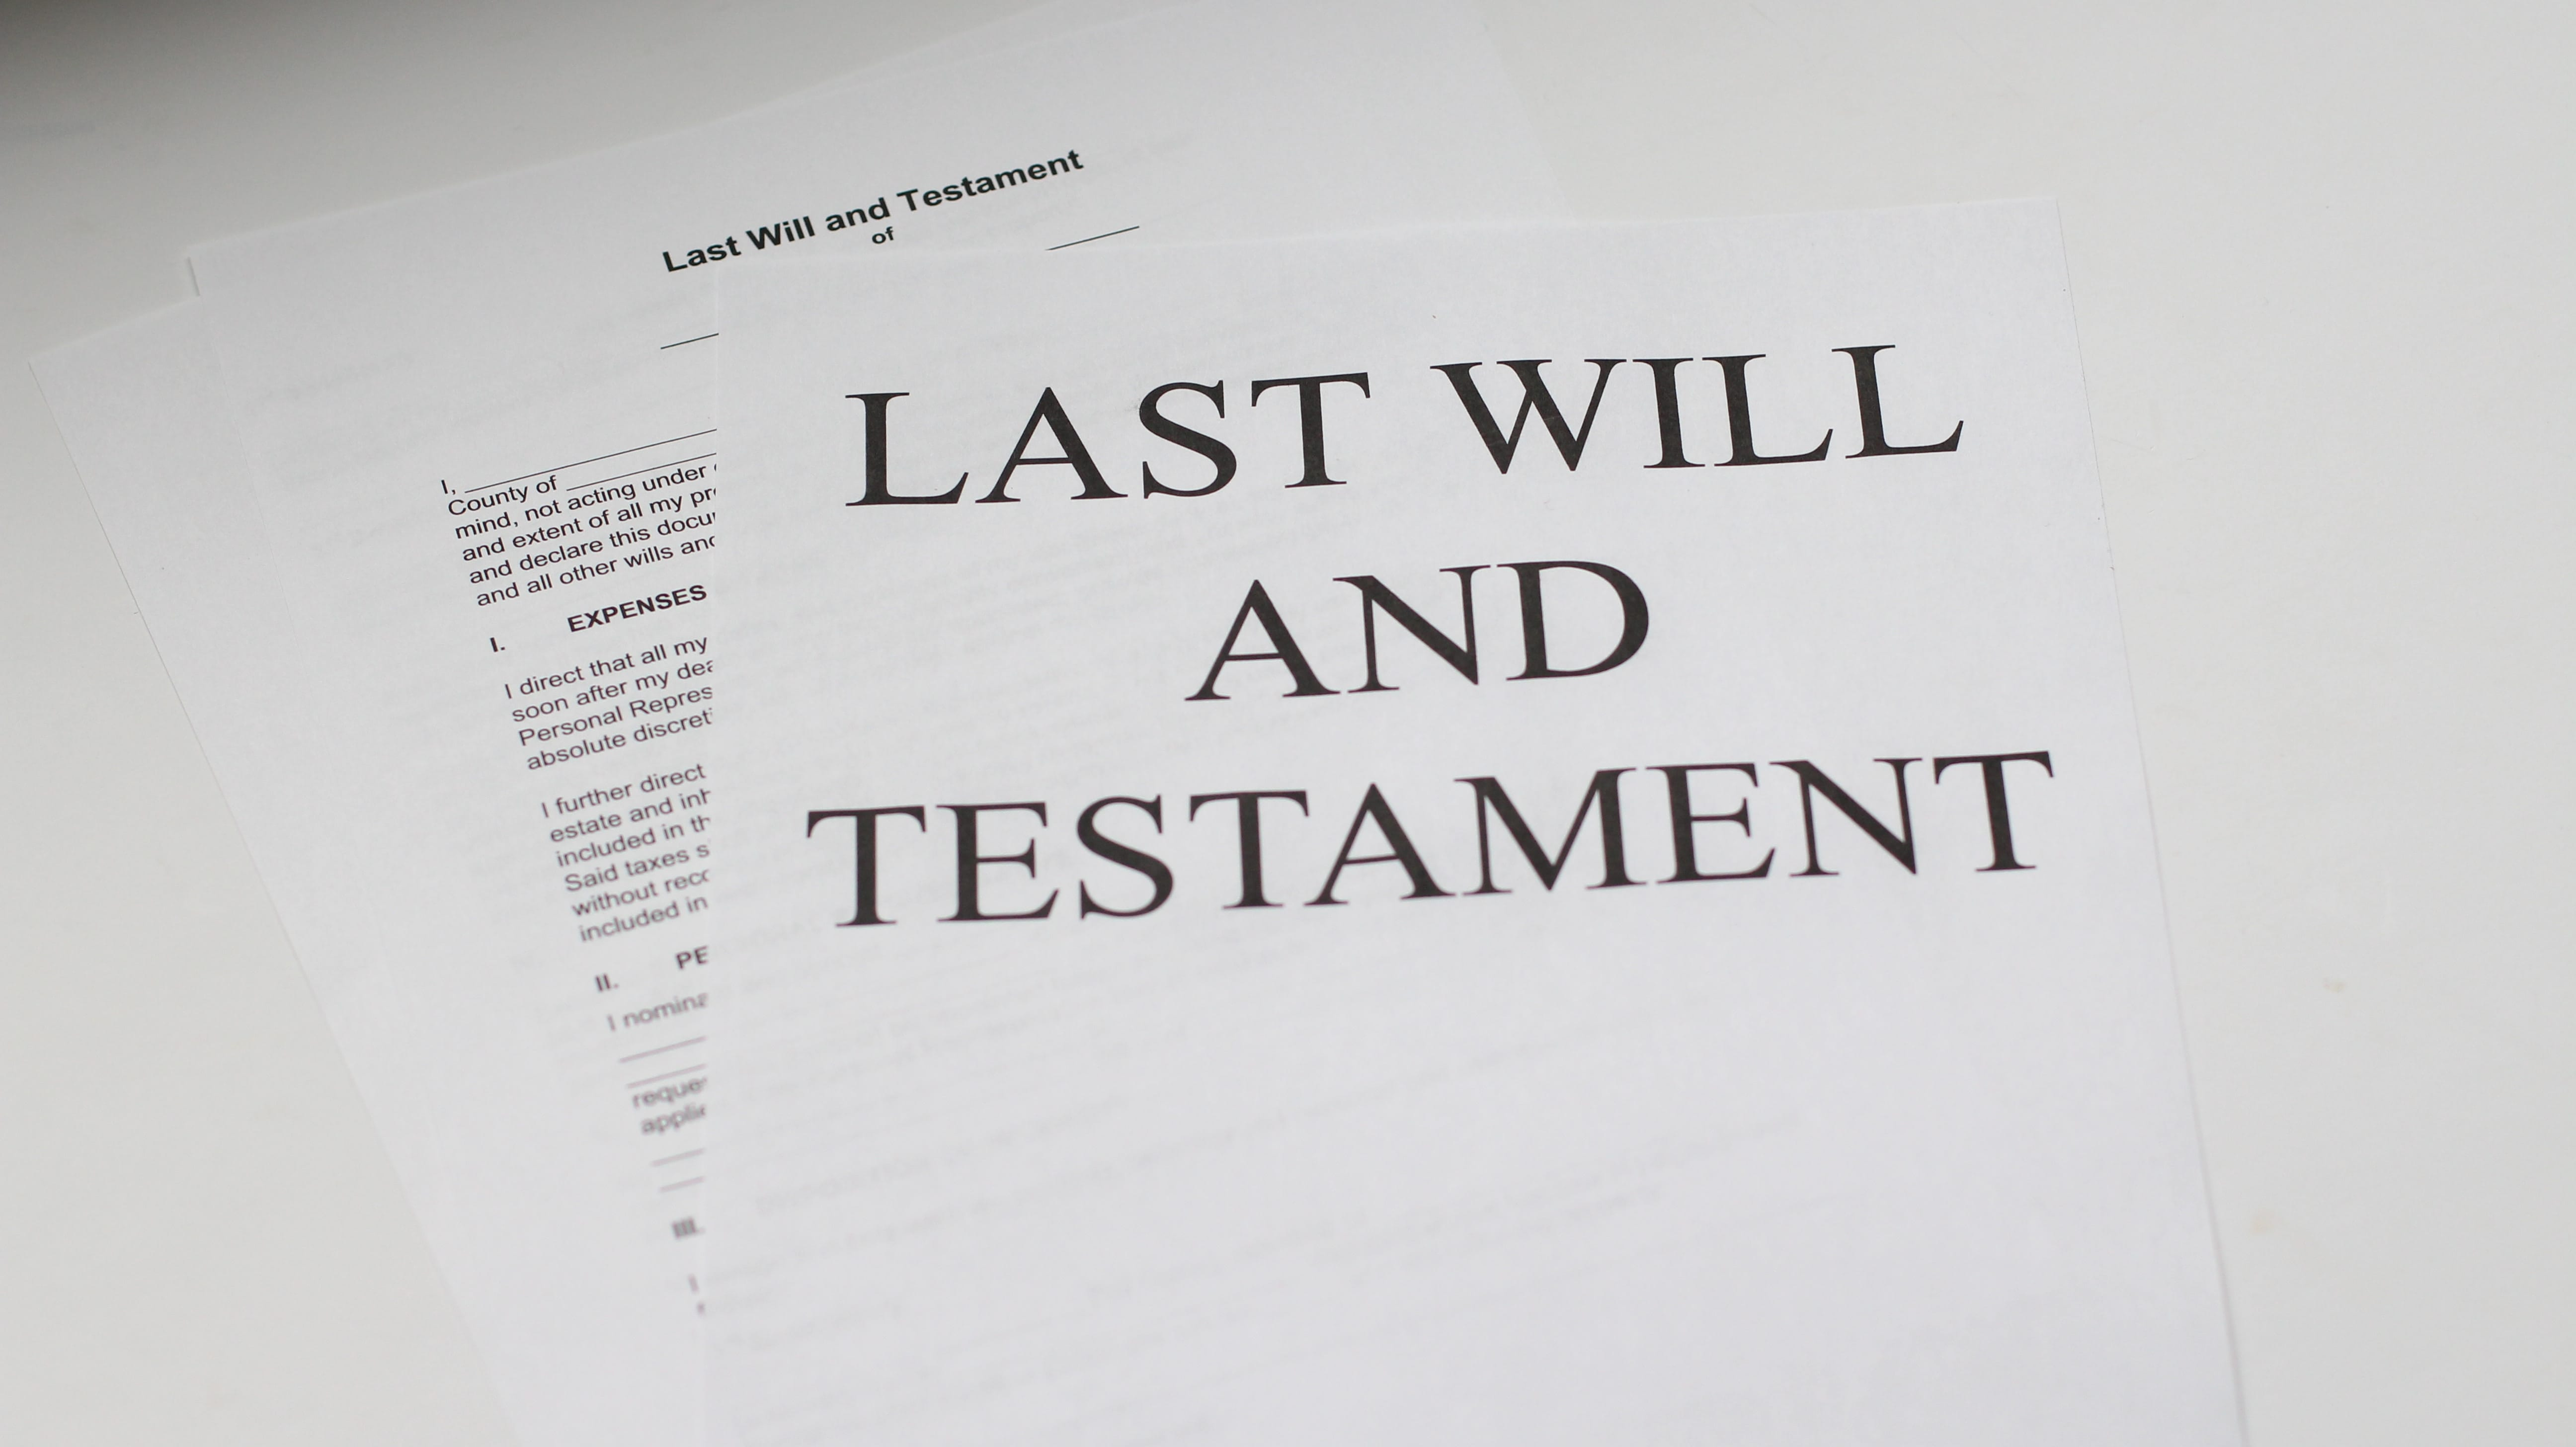 """Last Will and Testament;"" image by Melinda Gimpel, via Unsplash.com."